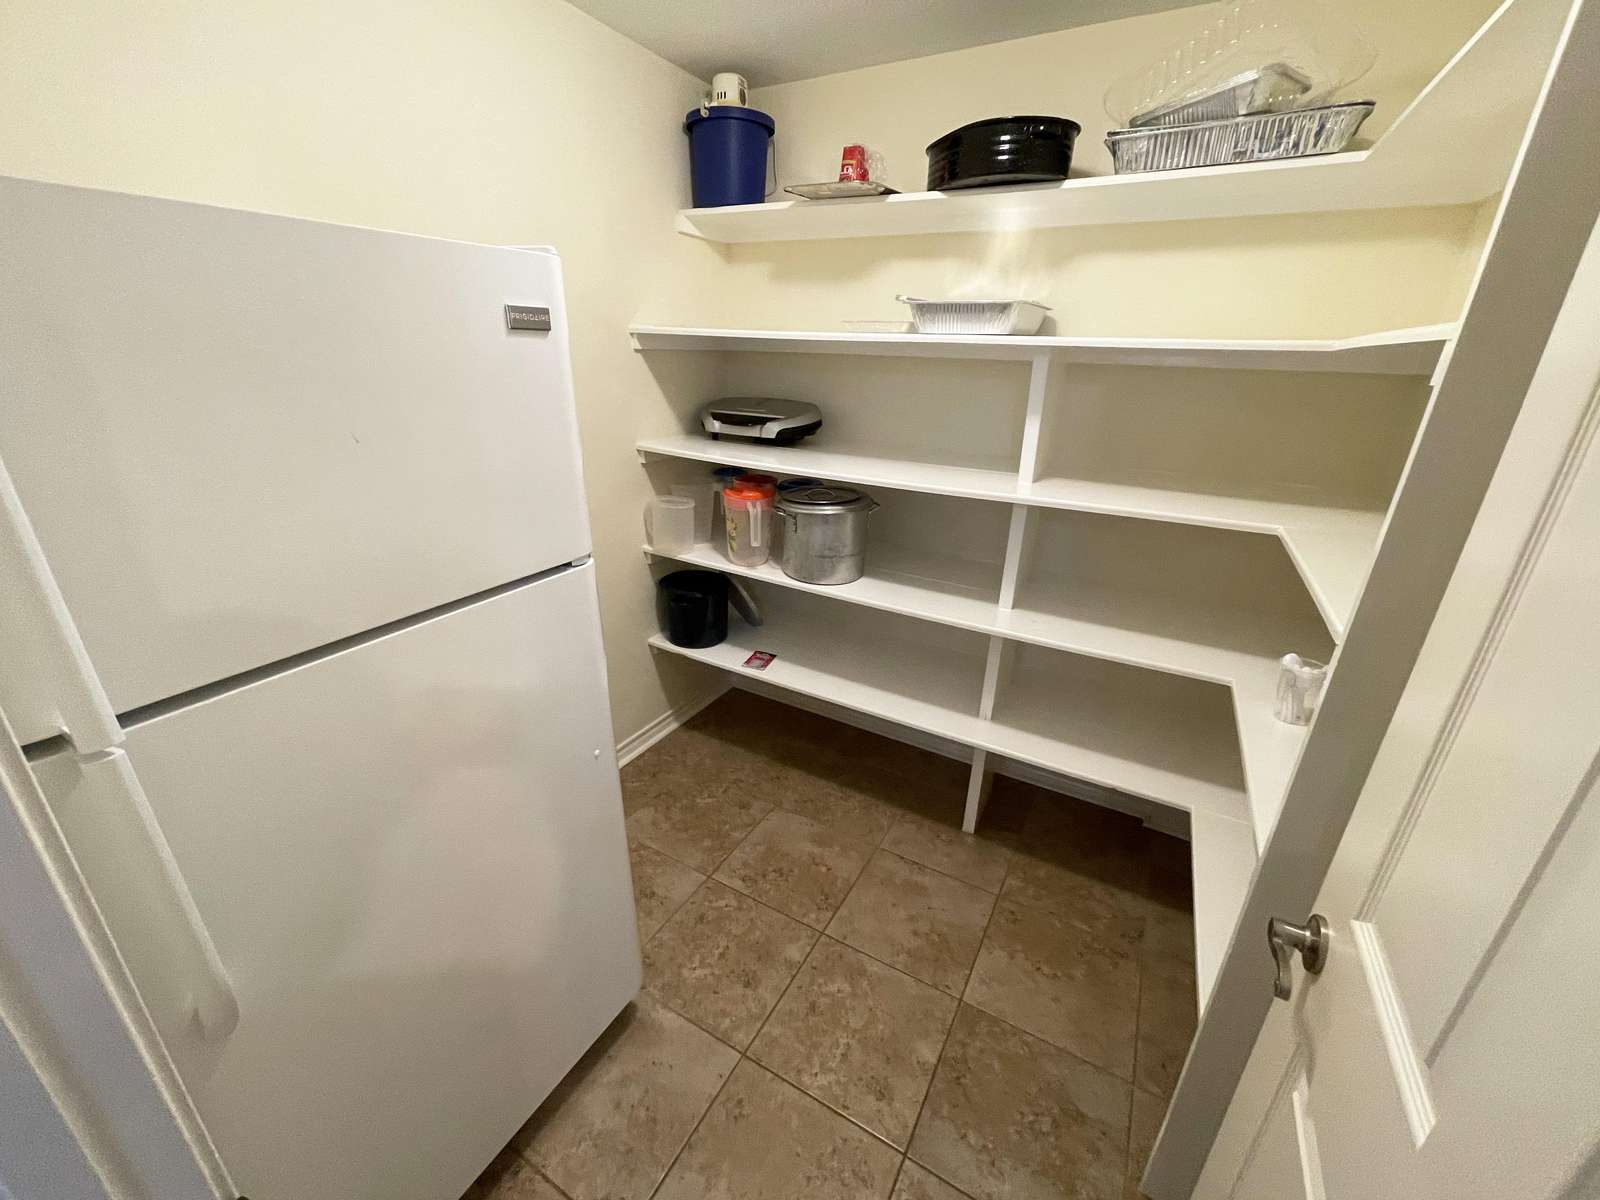 A closer look at the large pantry area that's perfect for storing all your food and drinks.